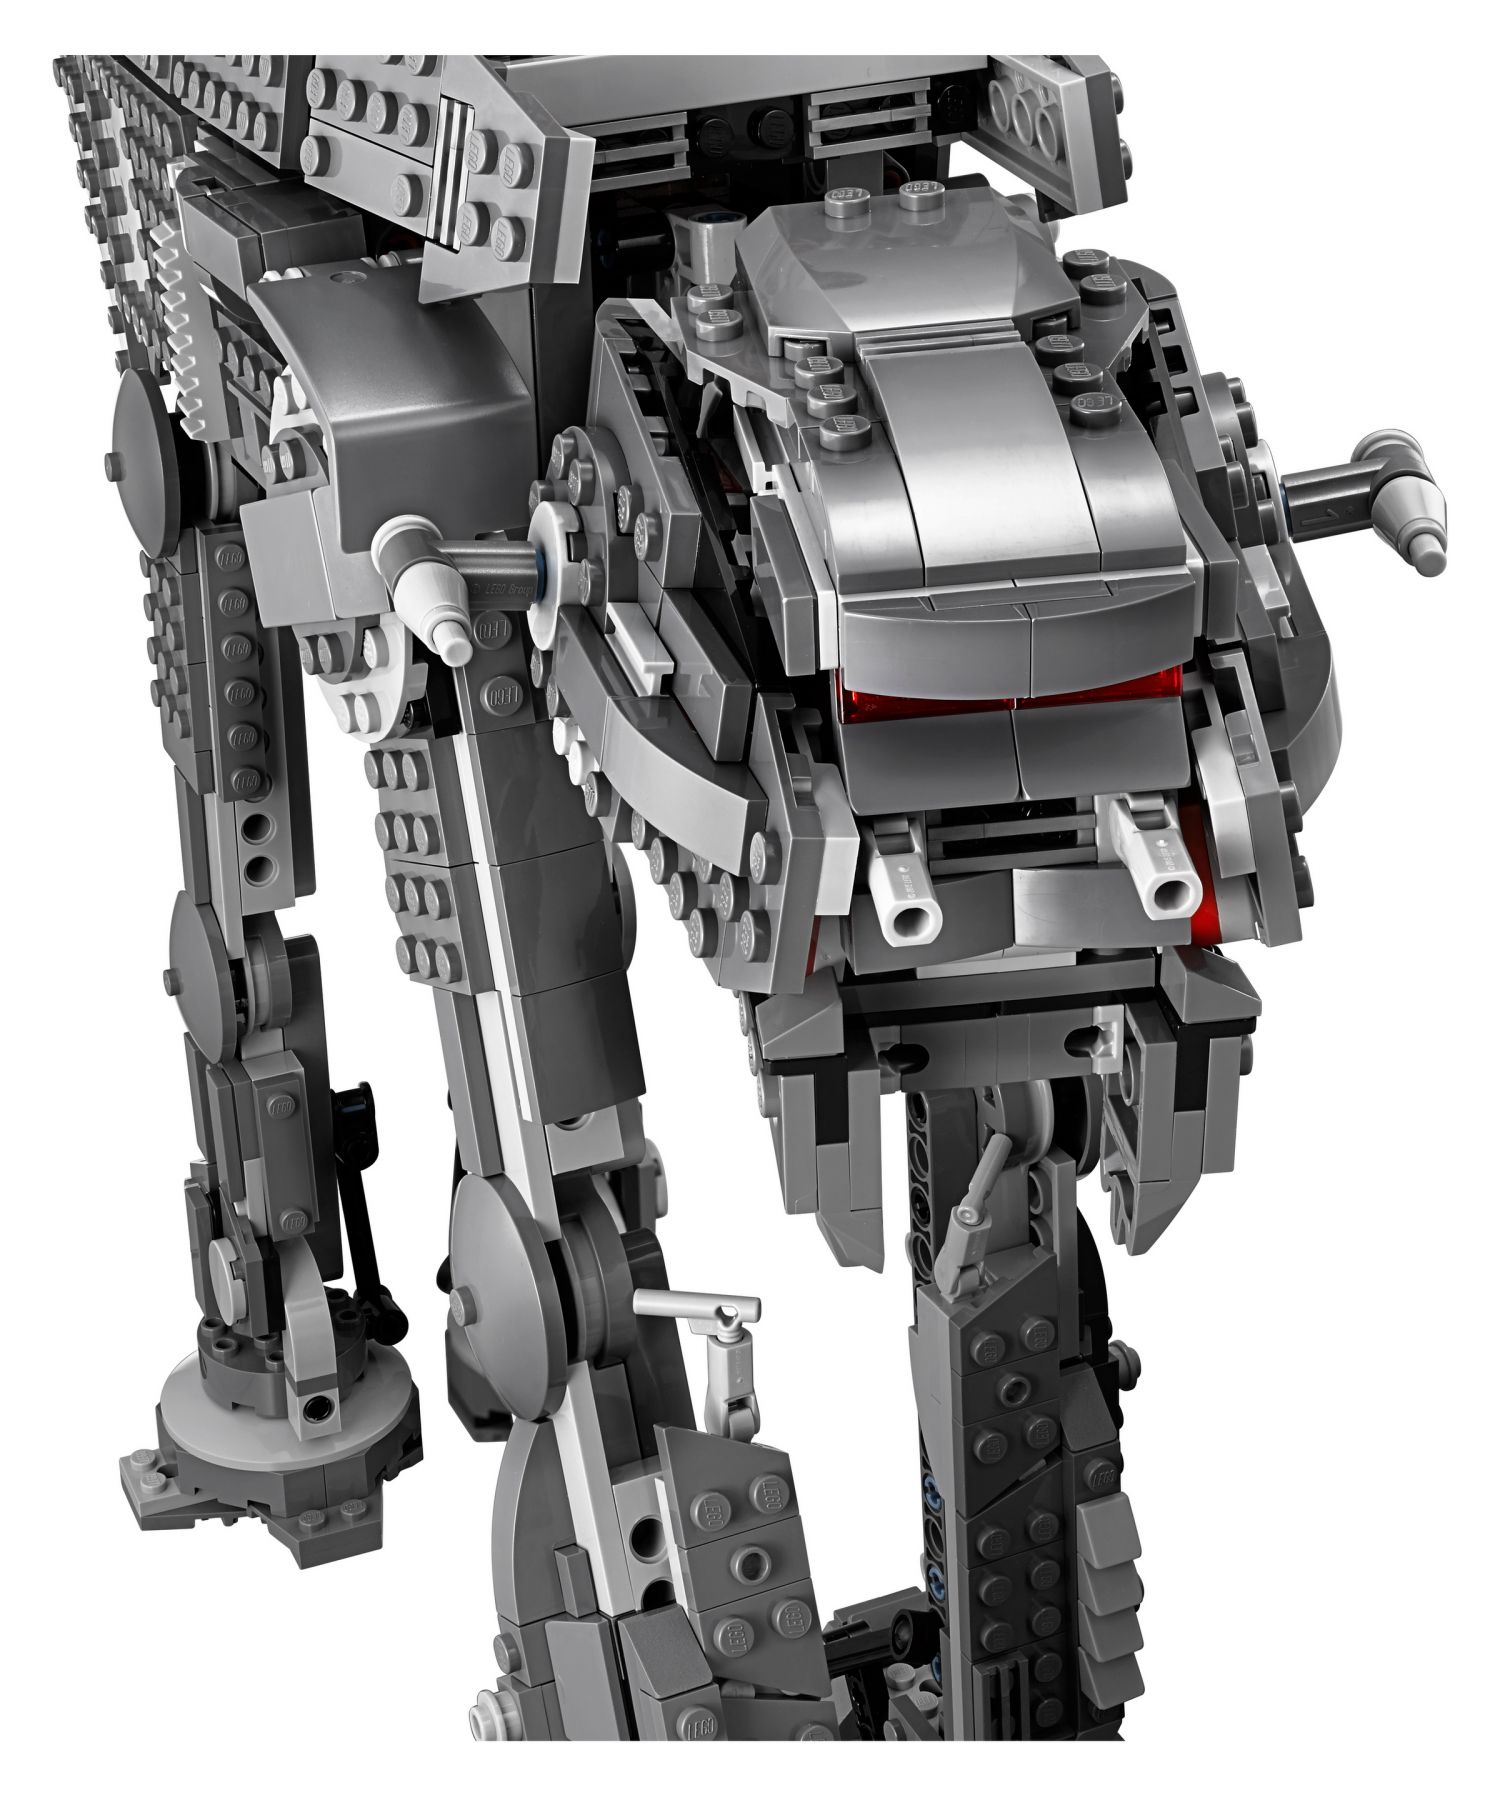 LEGO Star Wars 75189 First Order Heavy Assault Walker™ LEGO_75189_alt5.jpg